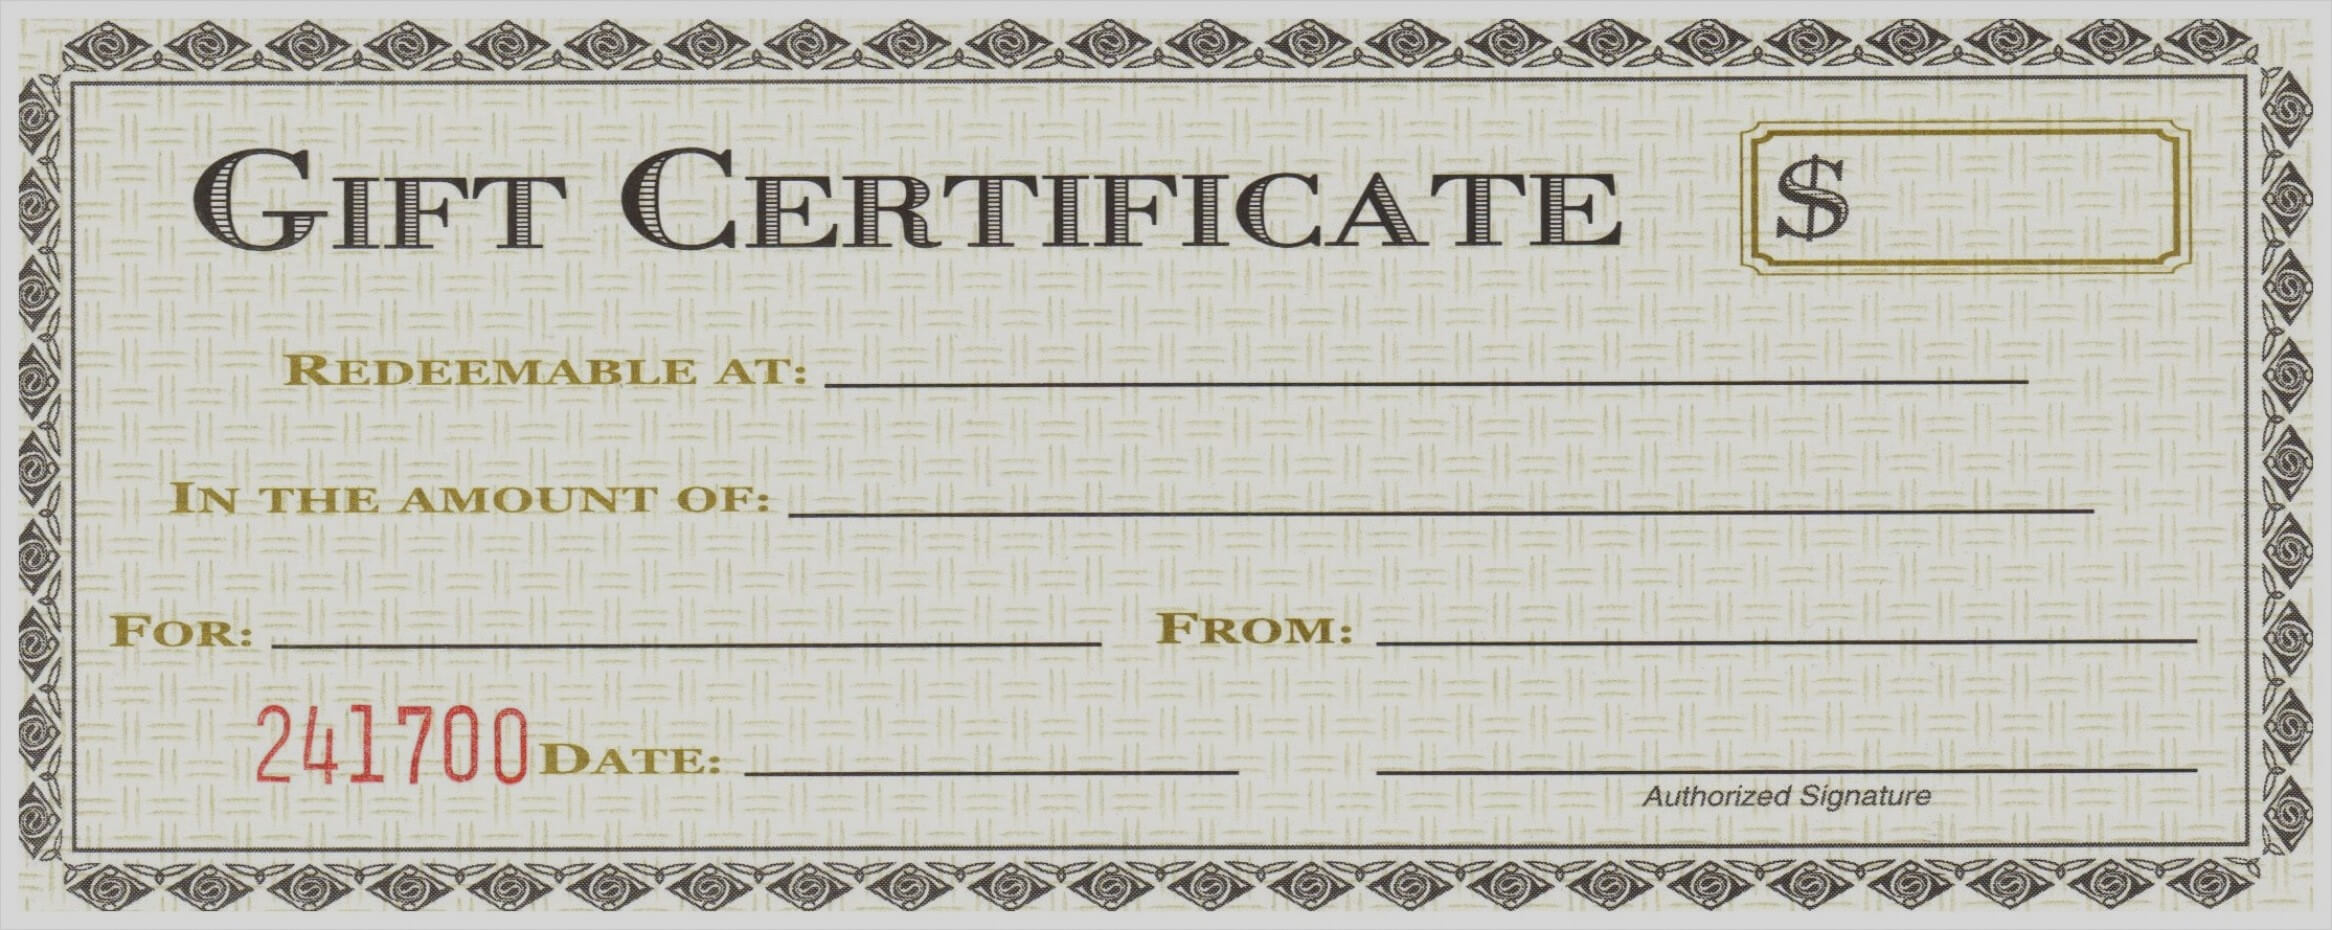 Free Printable Gift Vouchers Template Certificate Templates Throughout Certificate Template For Pages